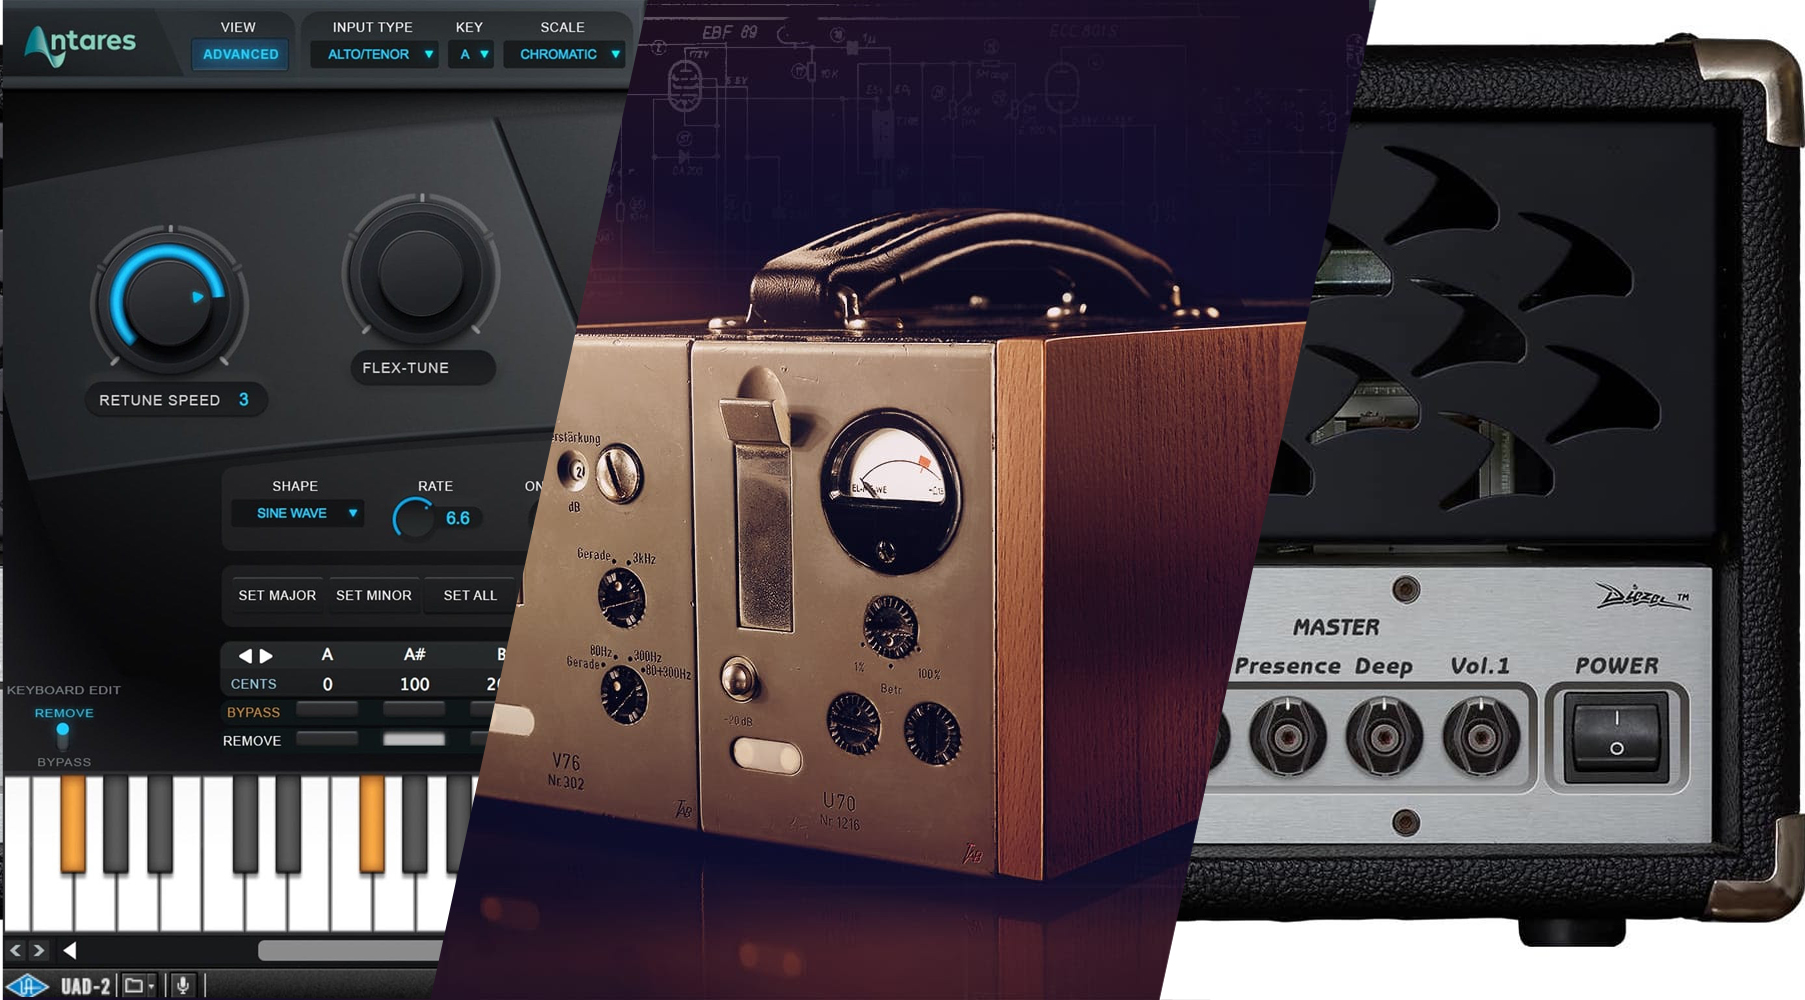 Antares Auto-Tune Realtime Advanced and Diezel Herbert plugins make